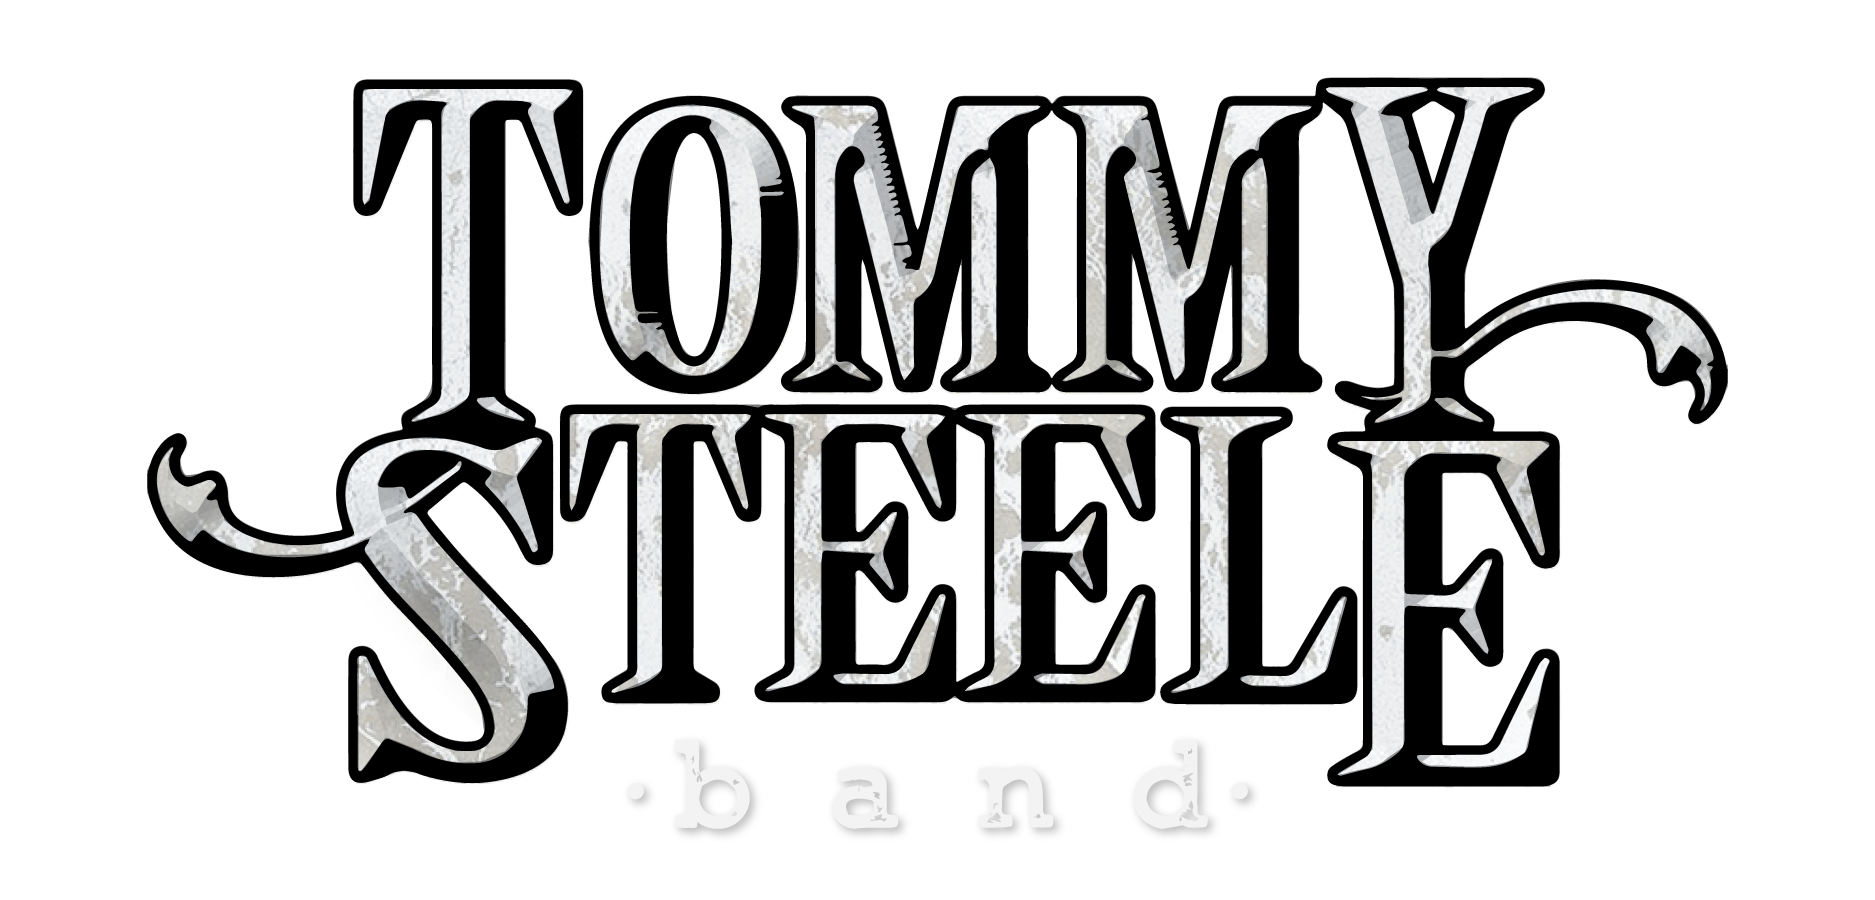 Baseball band of brothers clipart clipart black and white Tommy Steele Band | How the Hell Did I Get Here clipart black and white